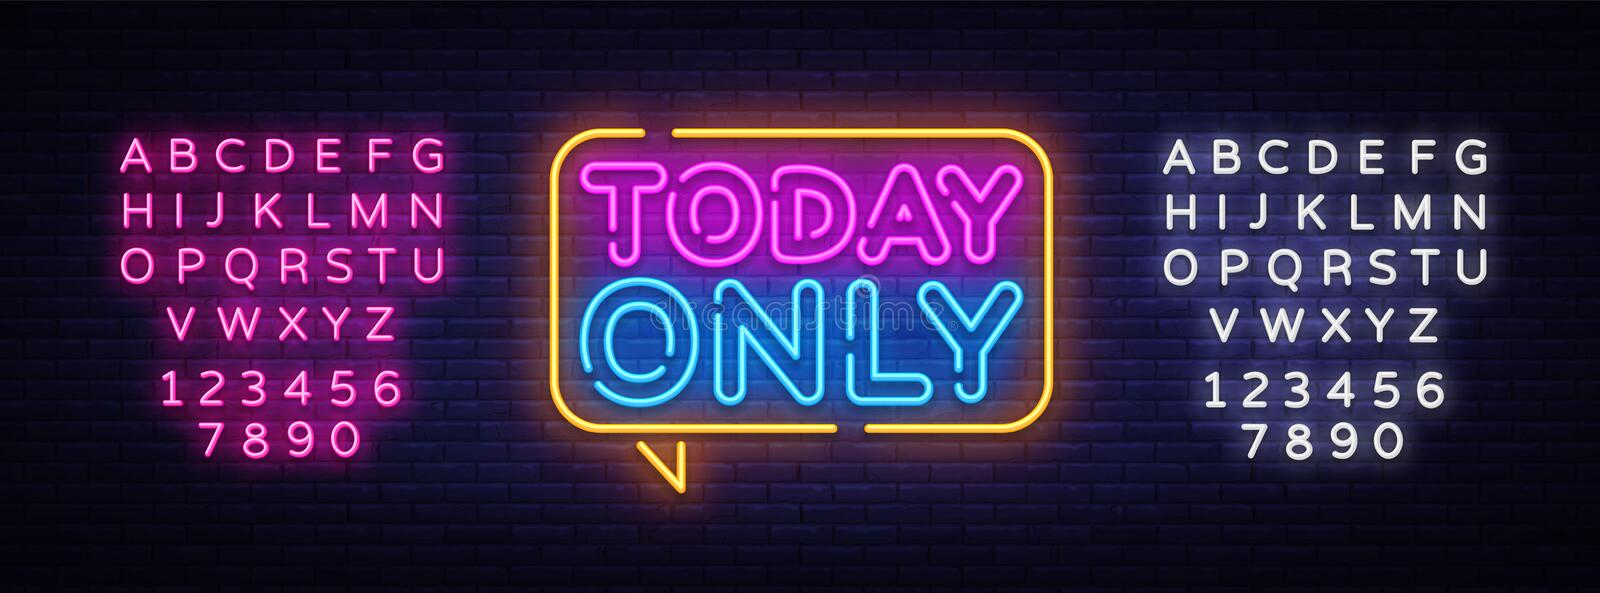 Today Only neon text vector design template. Today Only signboard neon, light banner design element colorful modern. Design trend, night bright advertising royalty free illustration